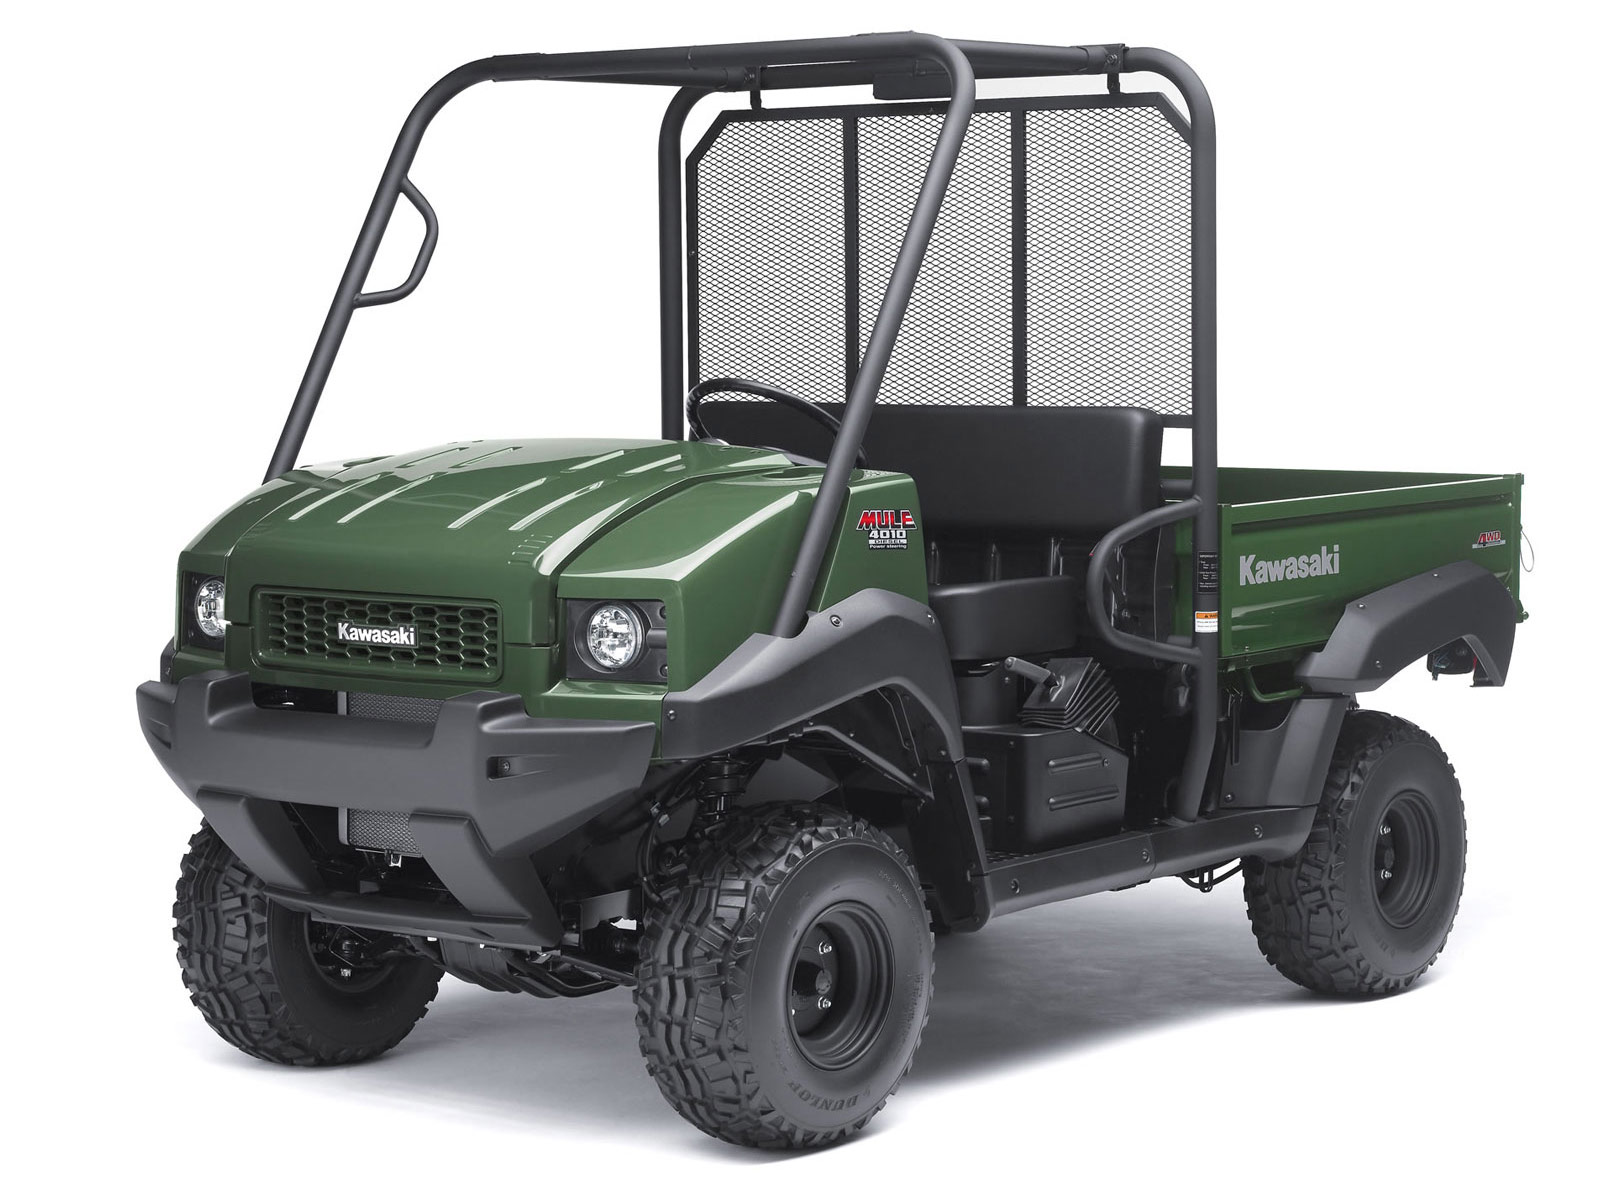 kawasaki mule 3010 diesel manuals  real deal  ebook guides we available  only left in stock order soon  has easy-to-readtext sections top quality  diagrams